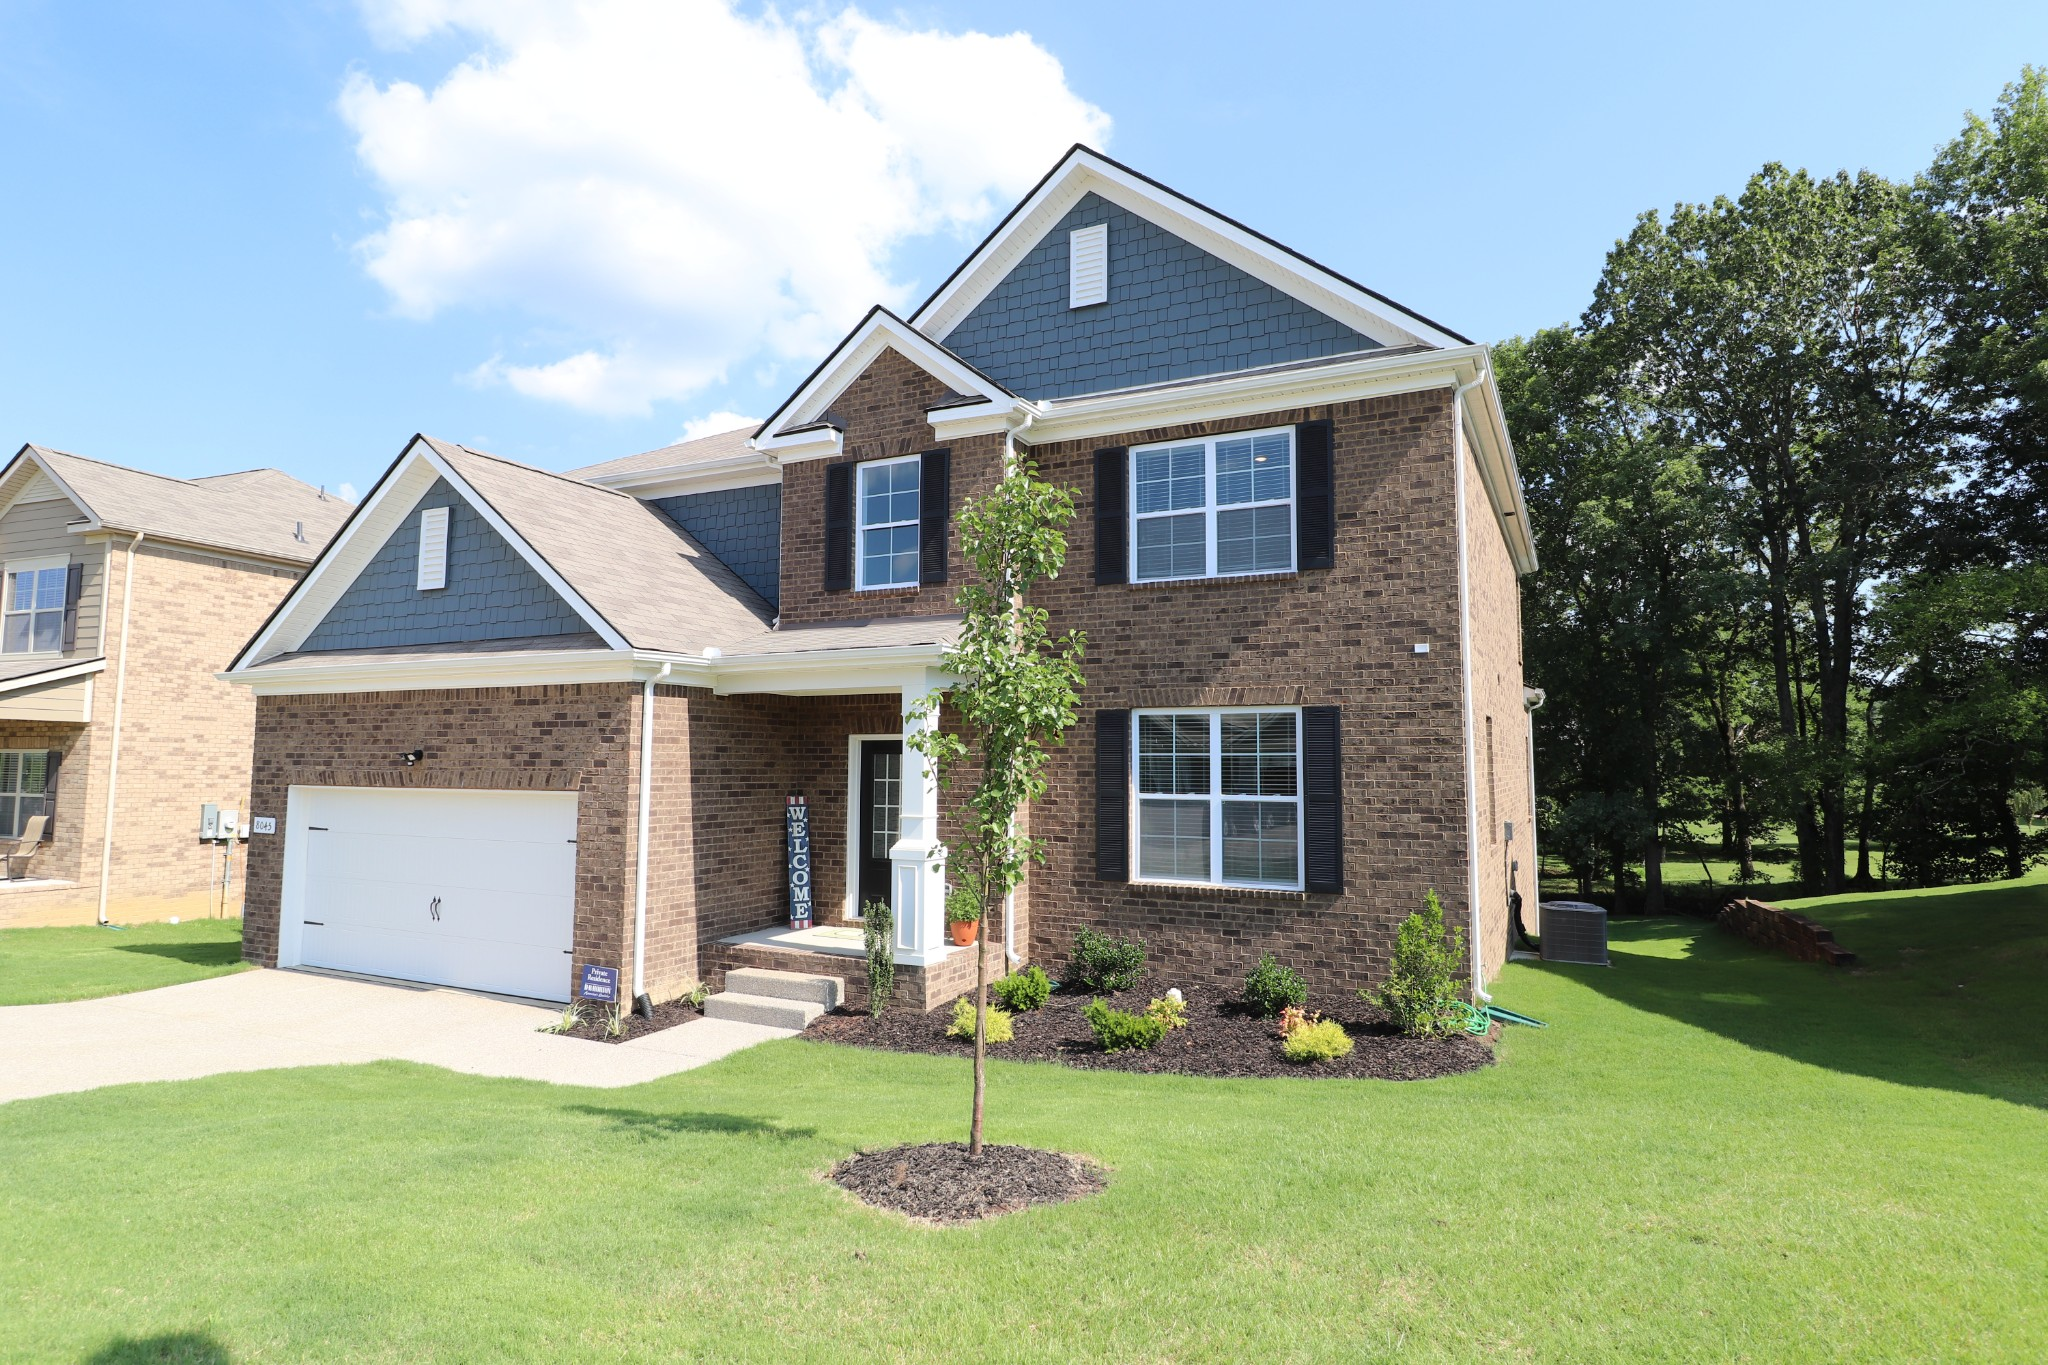 8045 Forest Hills Dr, Spring Hill, TN 37174 - Spring Hill, TN real estate listing